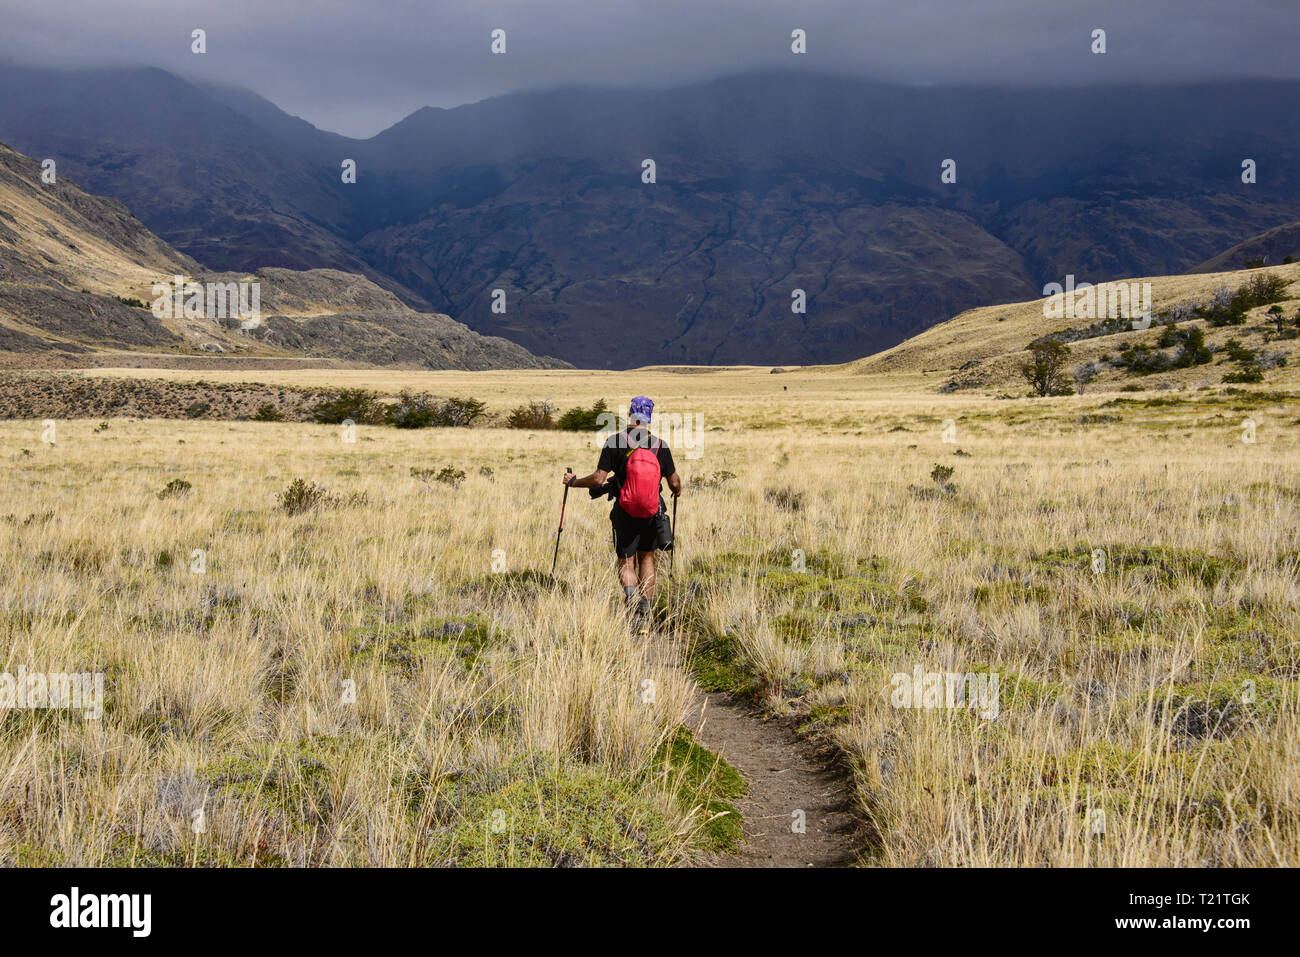 Trekking in beautiful Patagonia National Park, Aysen, Patagonia, Chile - Stock Image